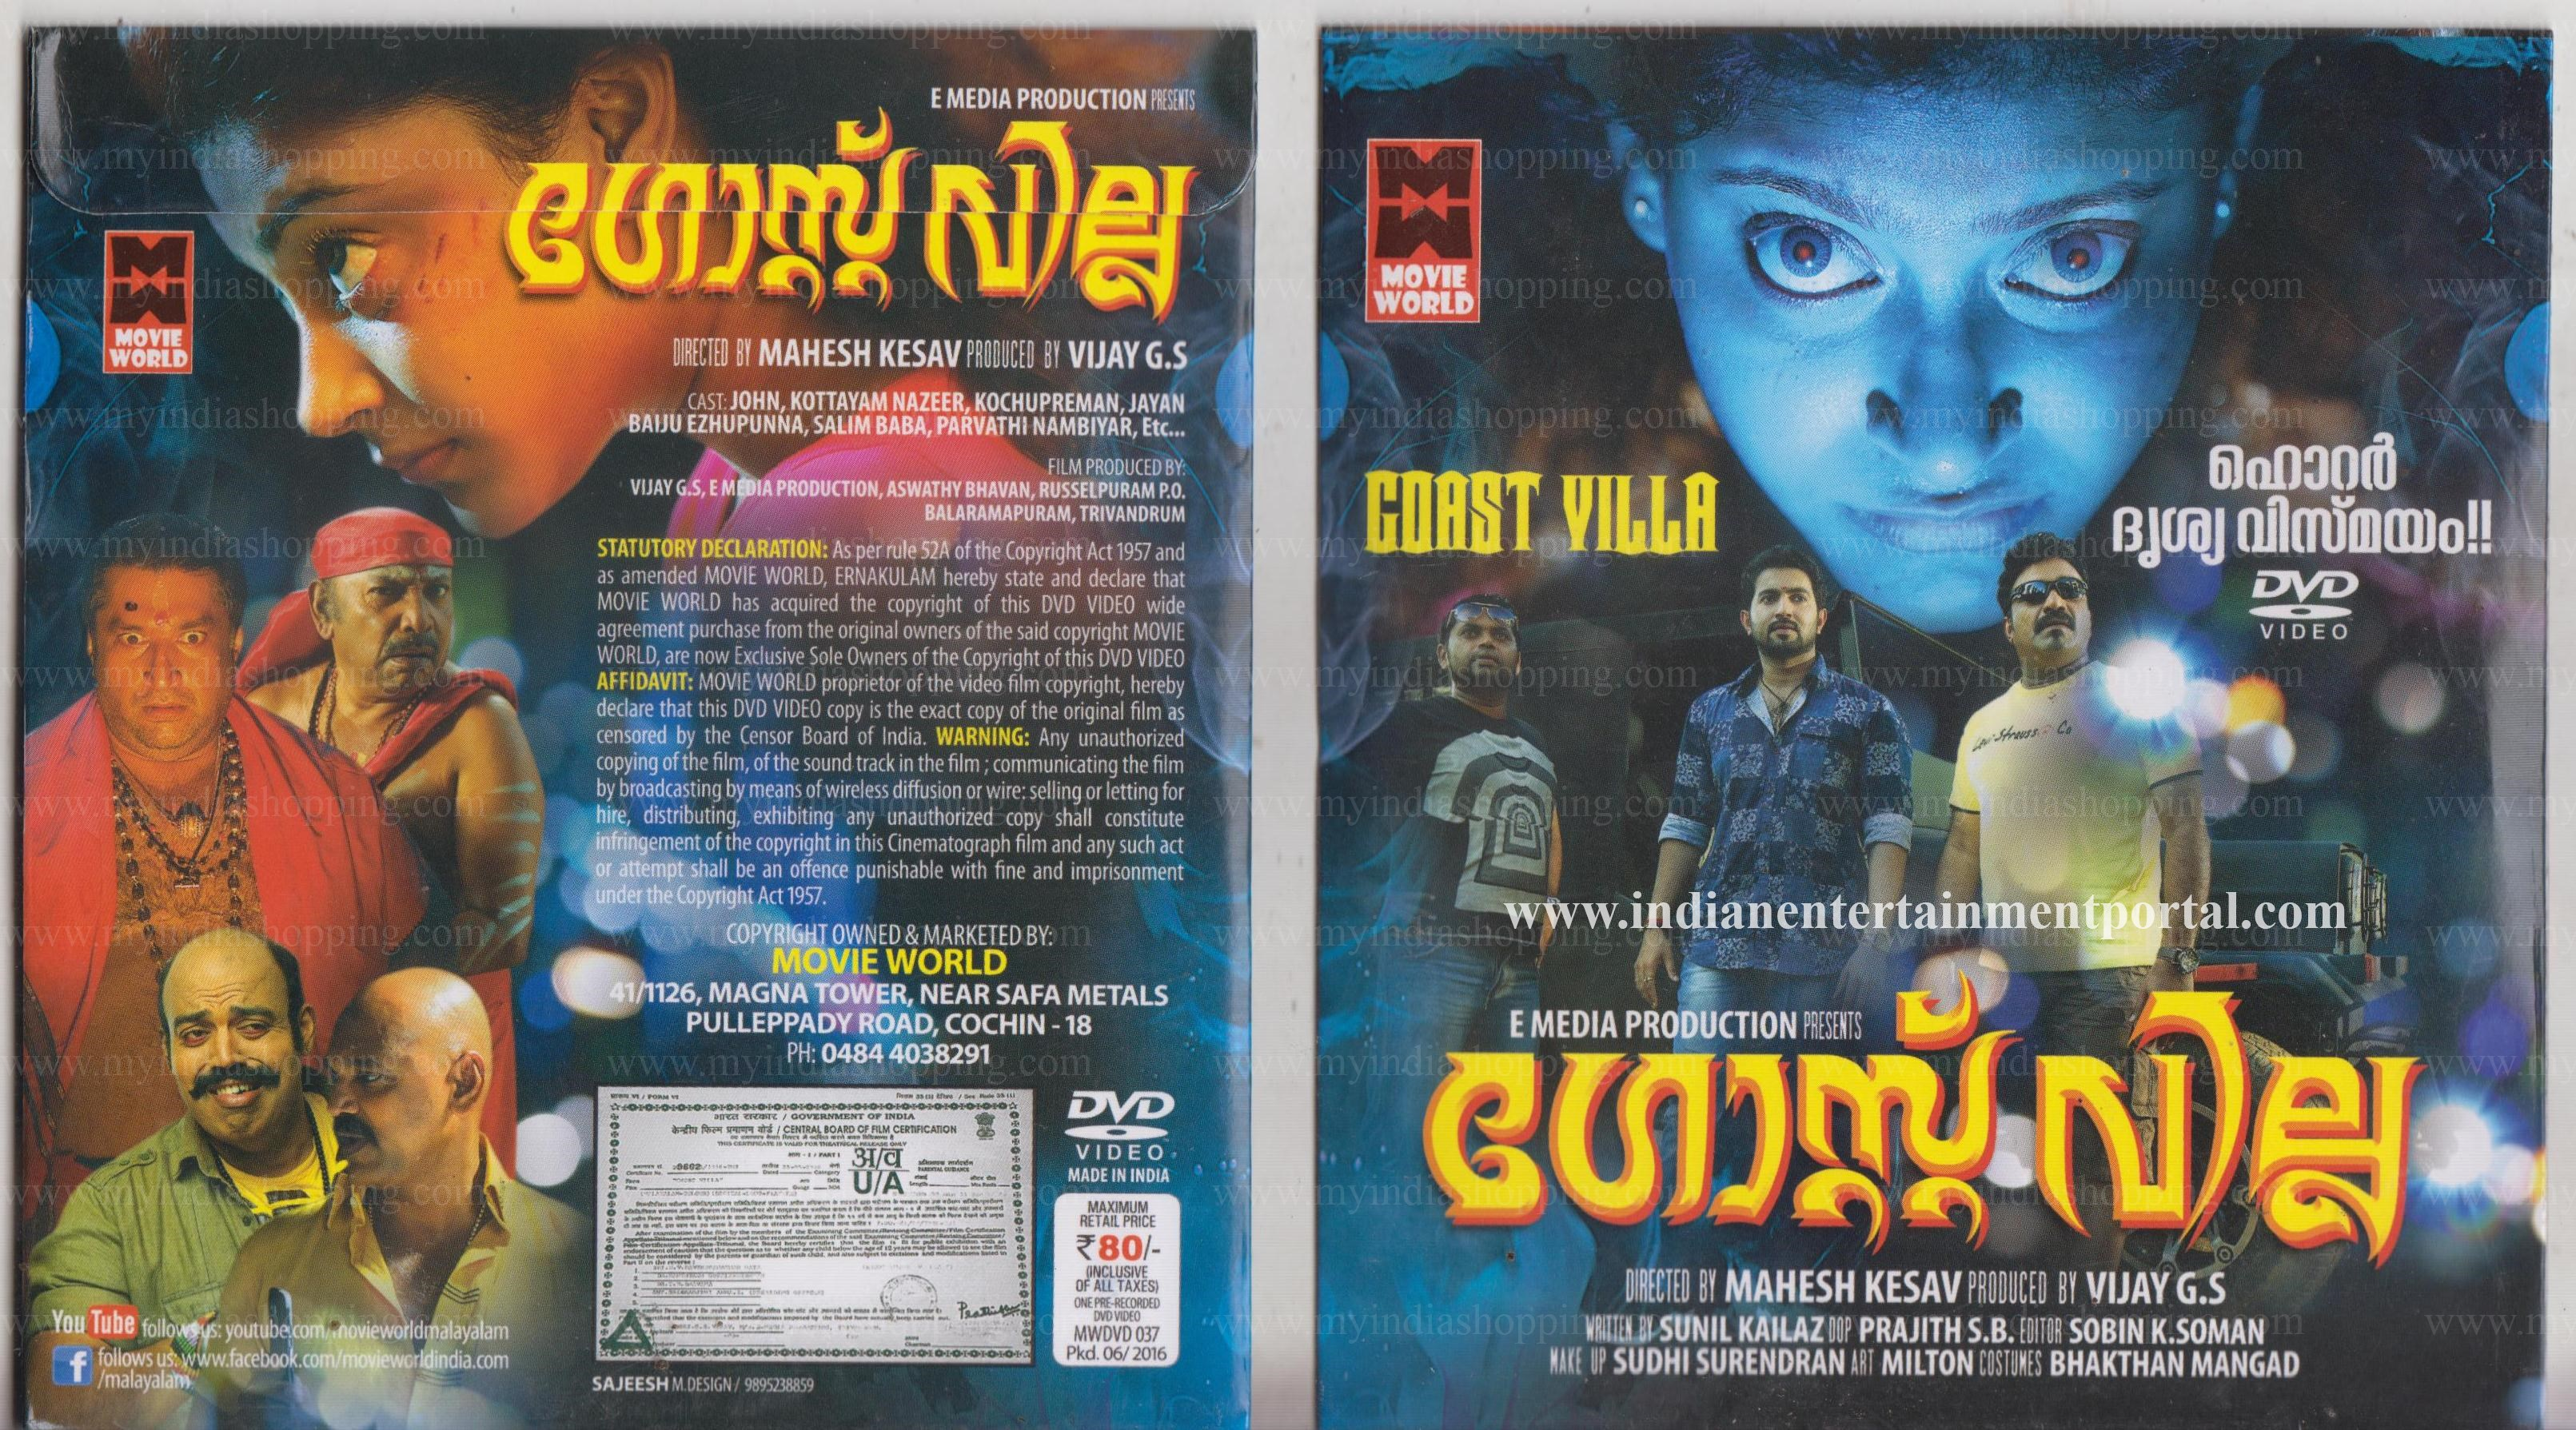 GHOST VILLA DVD Released from MOVIE WORLD [gv]